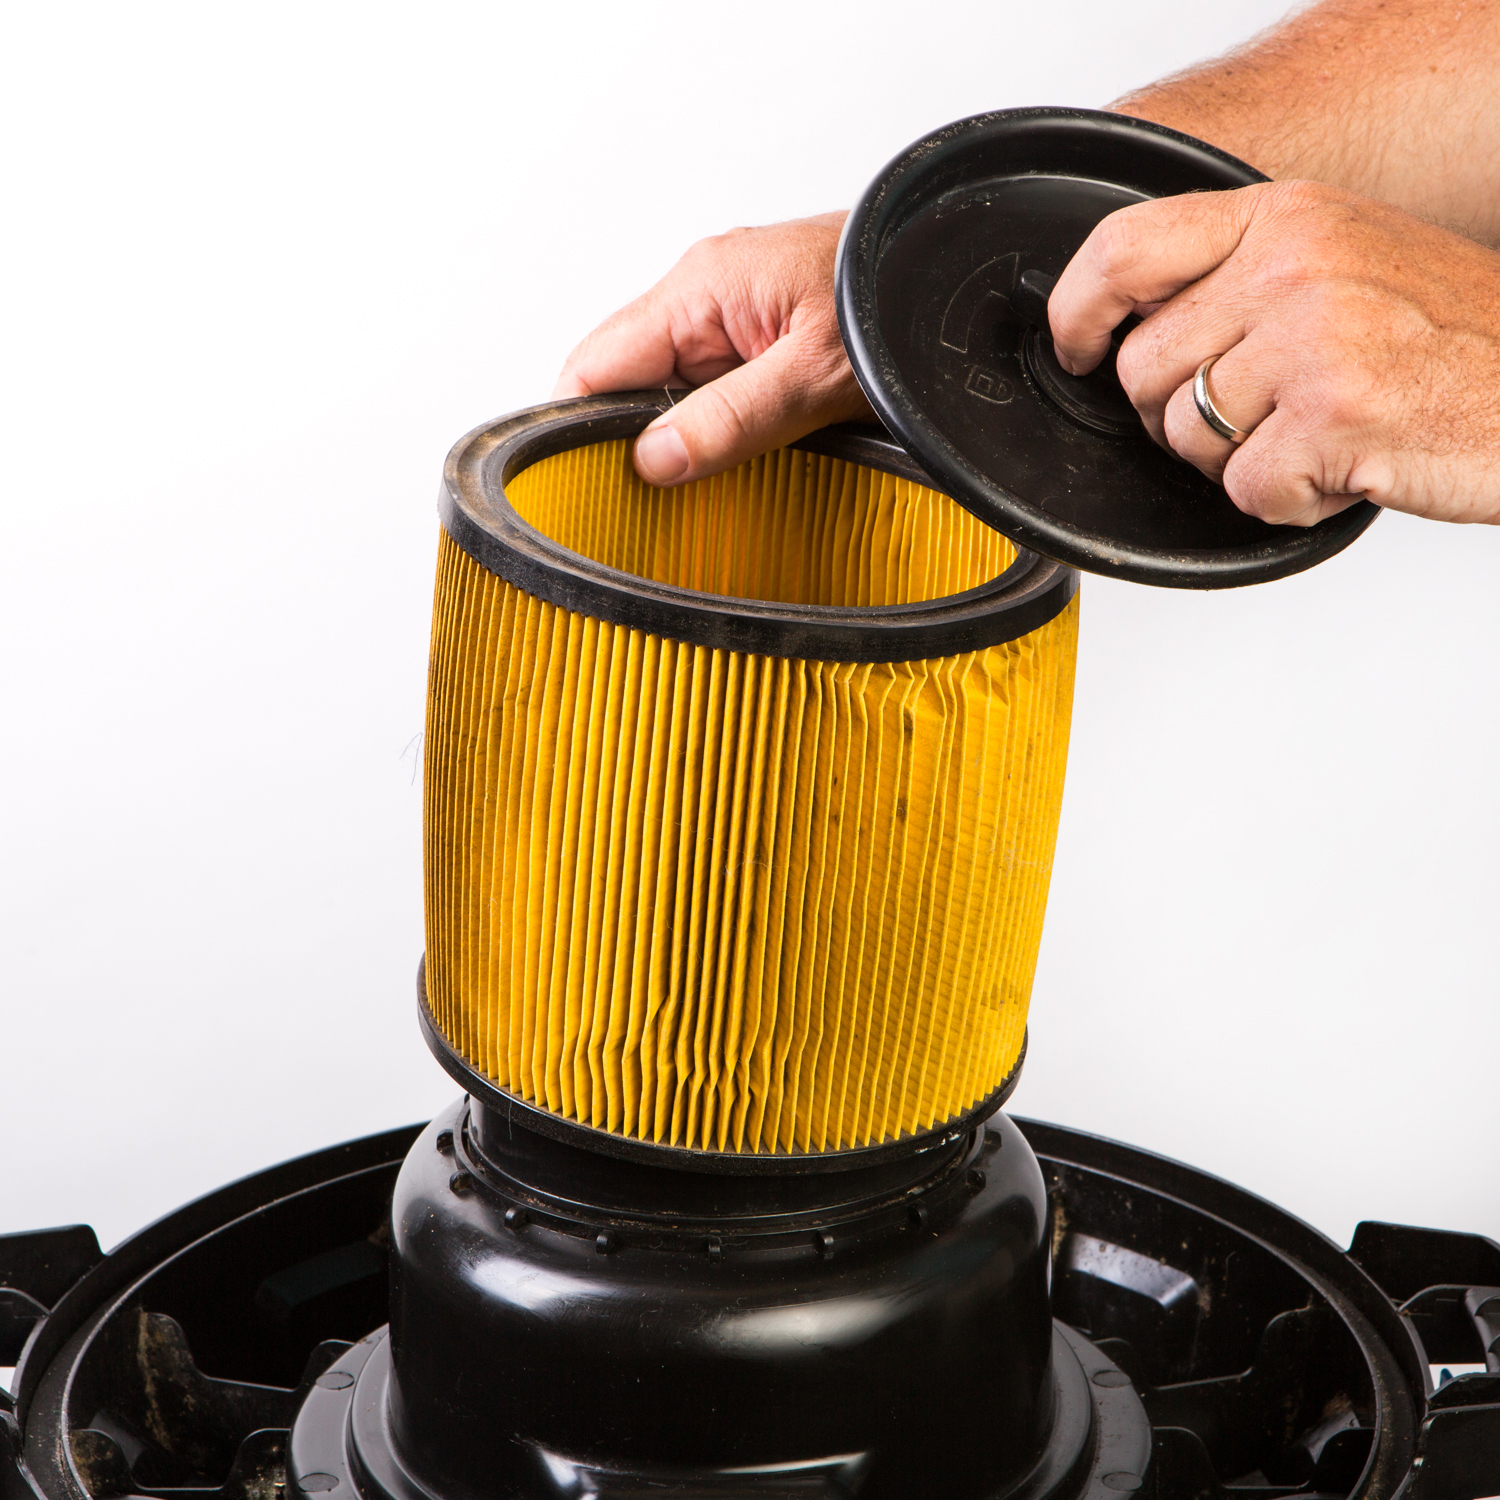 change the filter in a wet dry vac